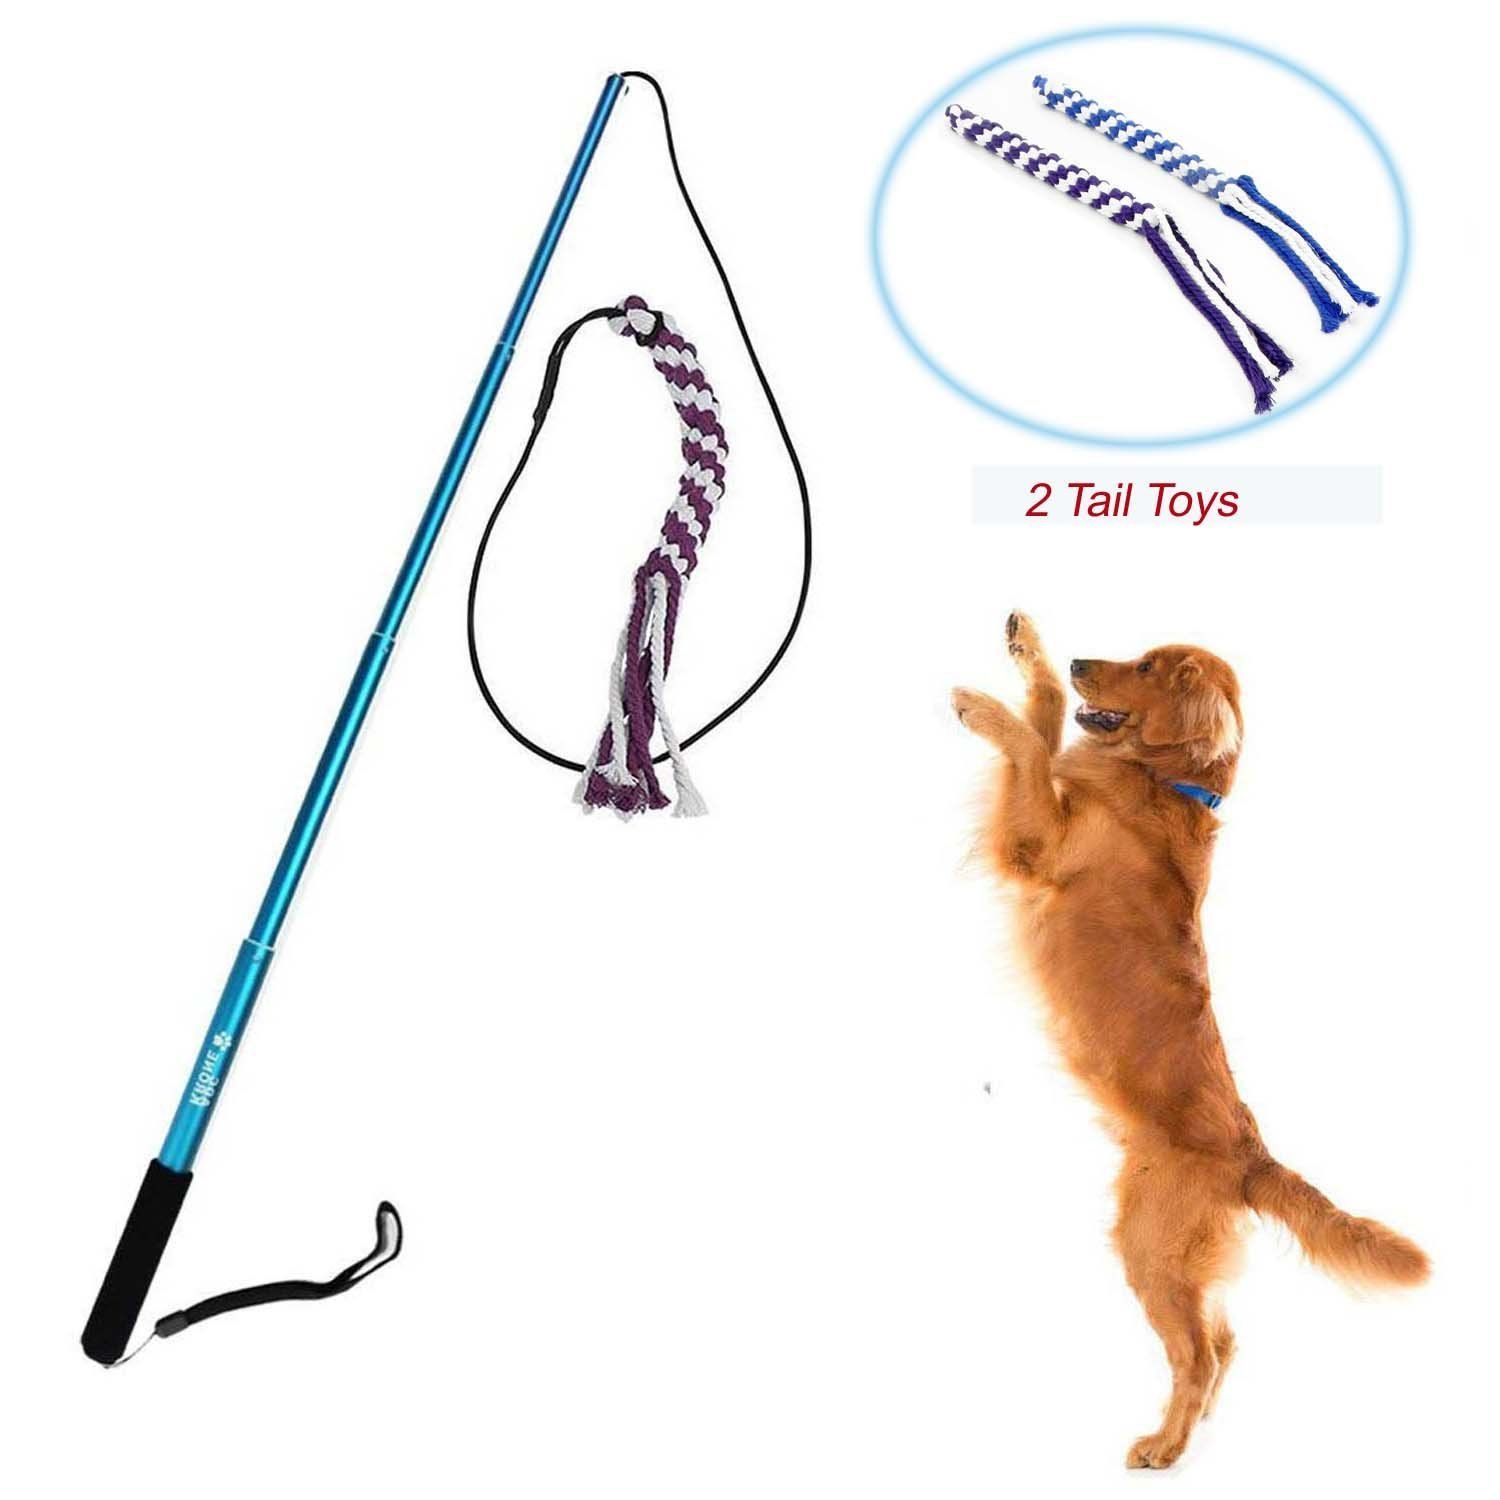 Wellbro Interactive Dog Extendable Teaser Wand With 2 Rope Chew Tail Toy Best Training And Excercing Teaser Toys With Images Cat Cages Dogs And Puppies Homemade Cat Toys